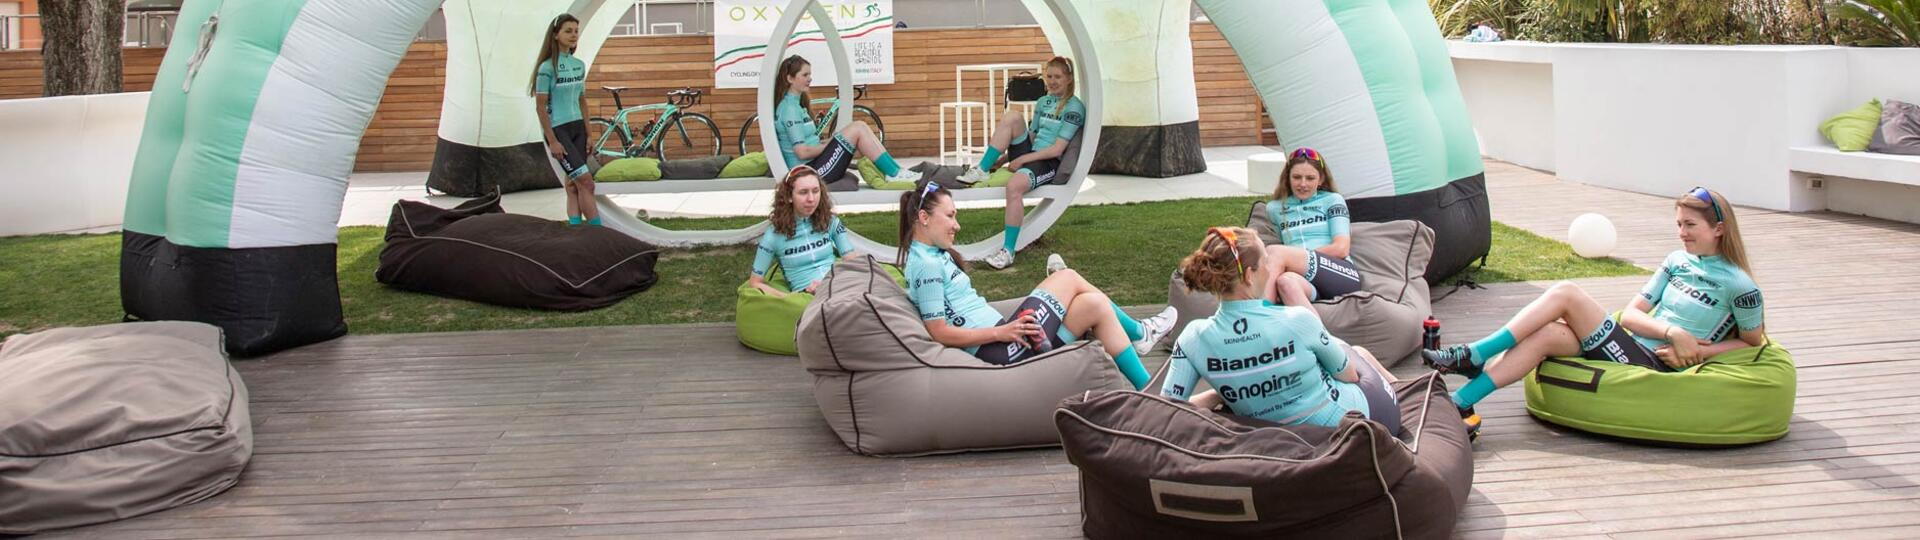 cycling.oxygenhotel it road-bike-mini-giro-d-italia-5-giorni-5-regioni 012